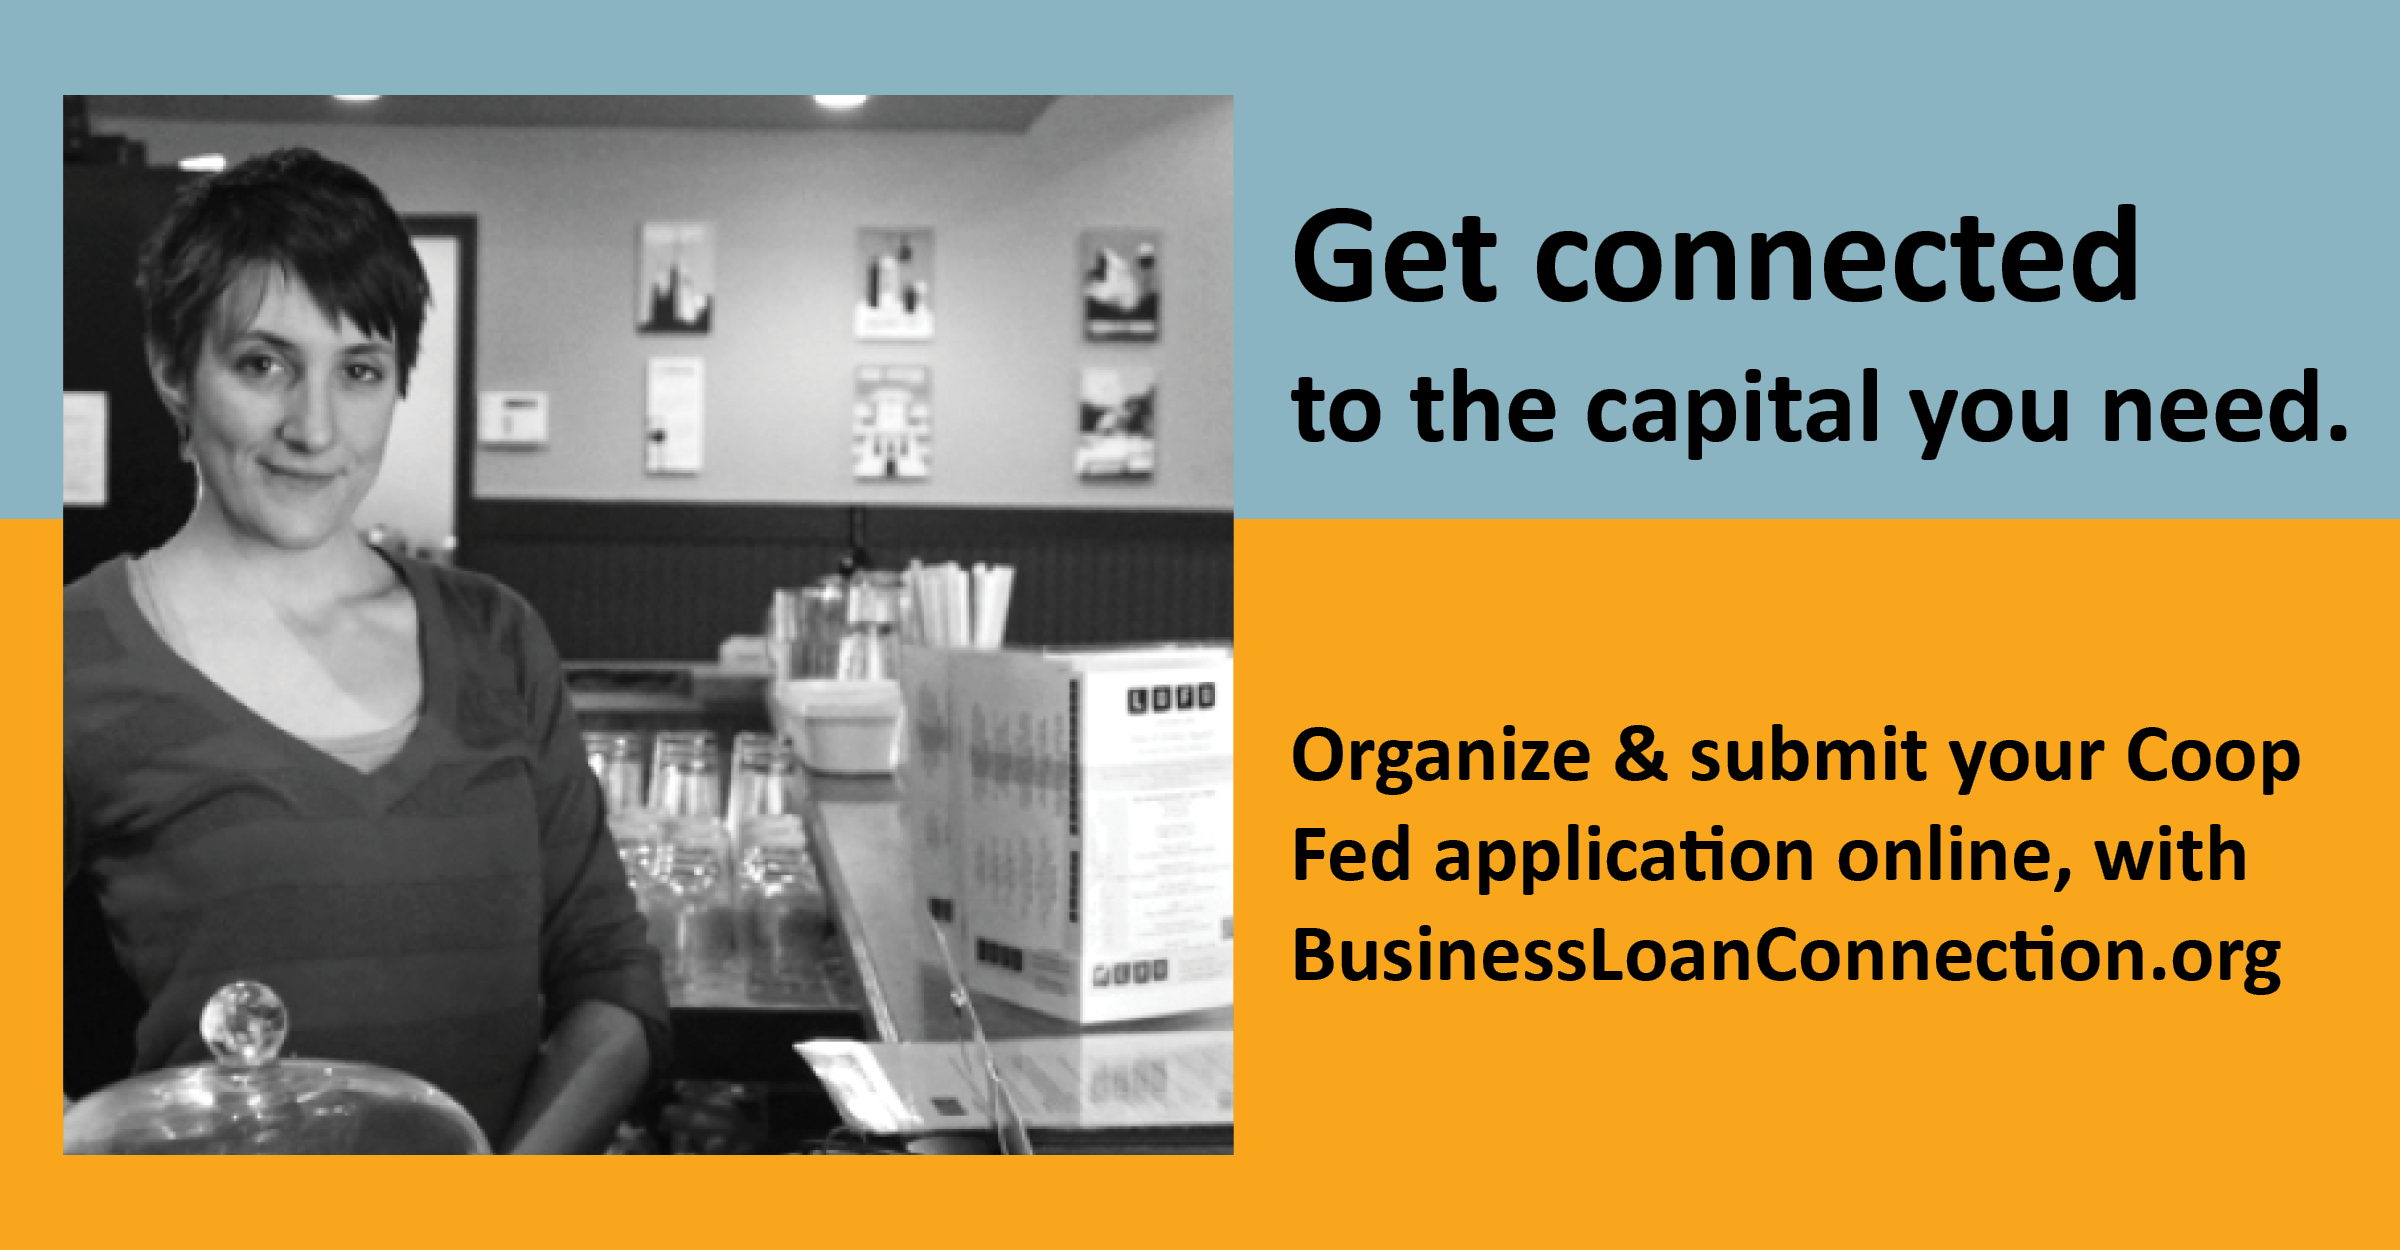 Get connected to the capital you need.